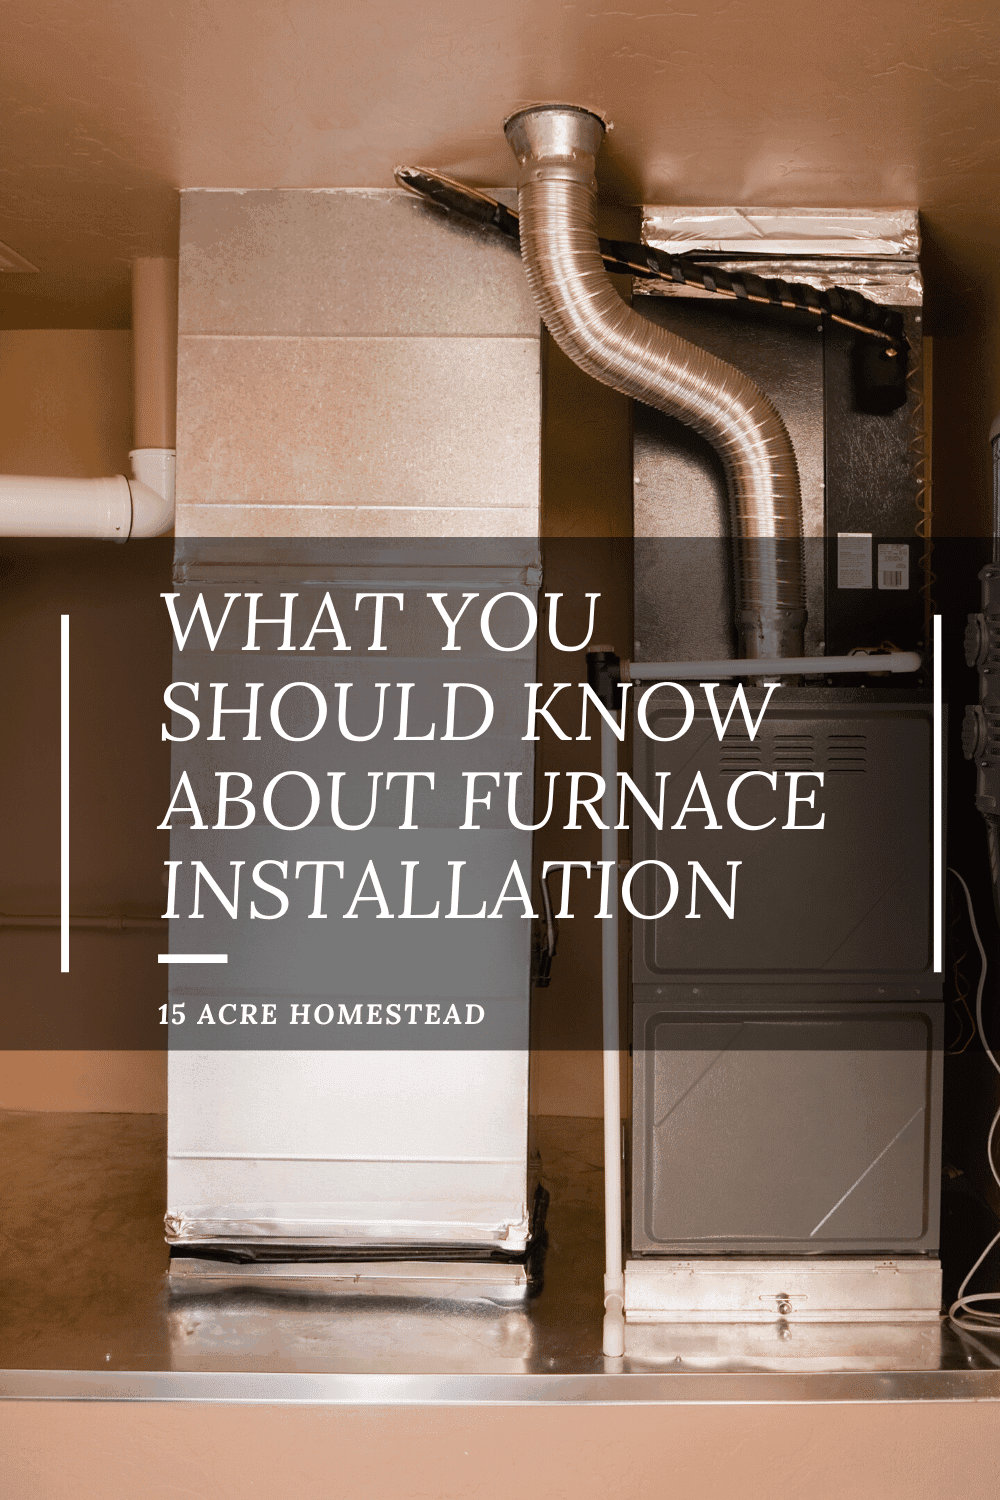 Find the answers you are looking for when it comes to having a furnace installed.